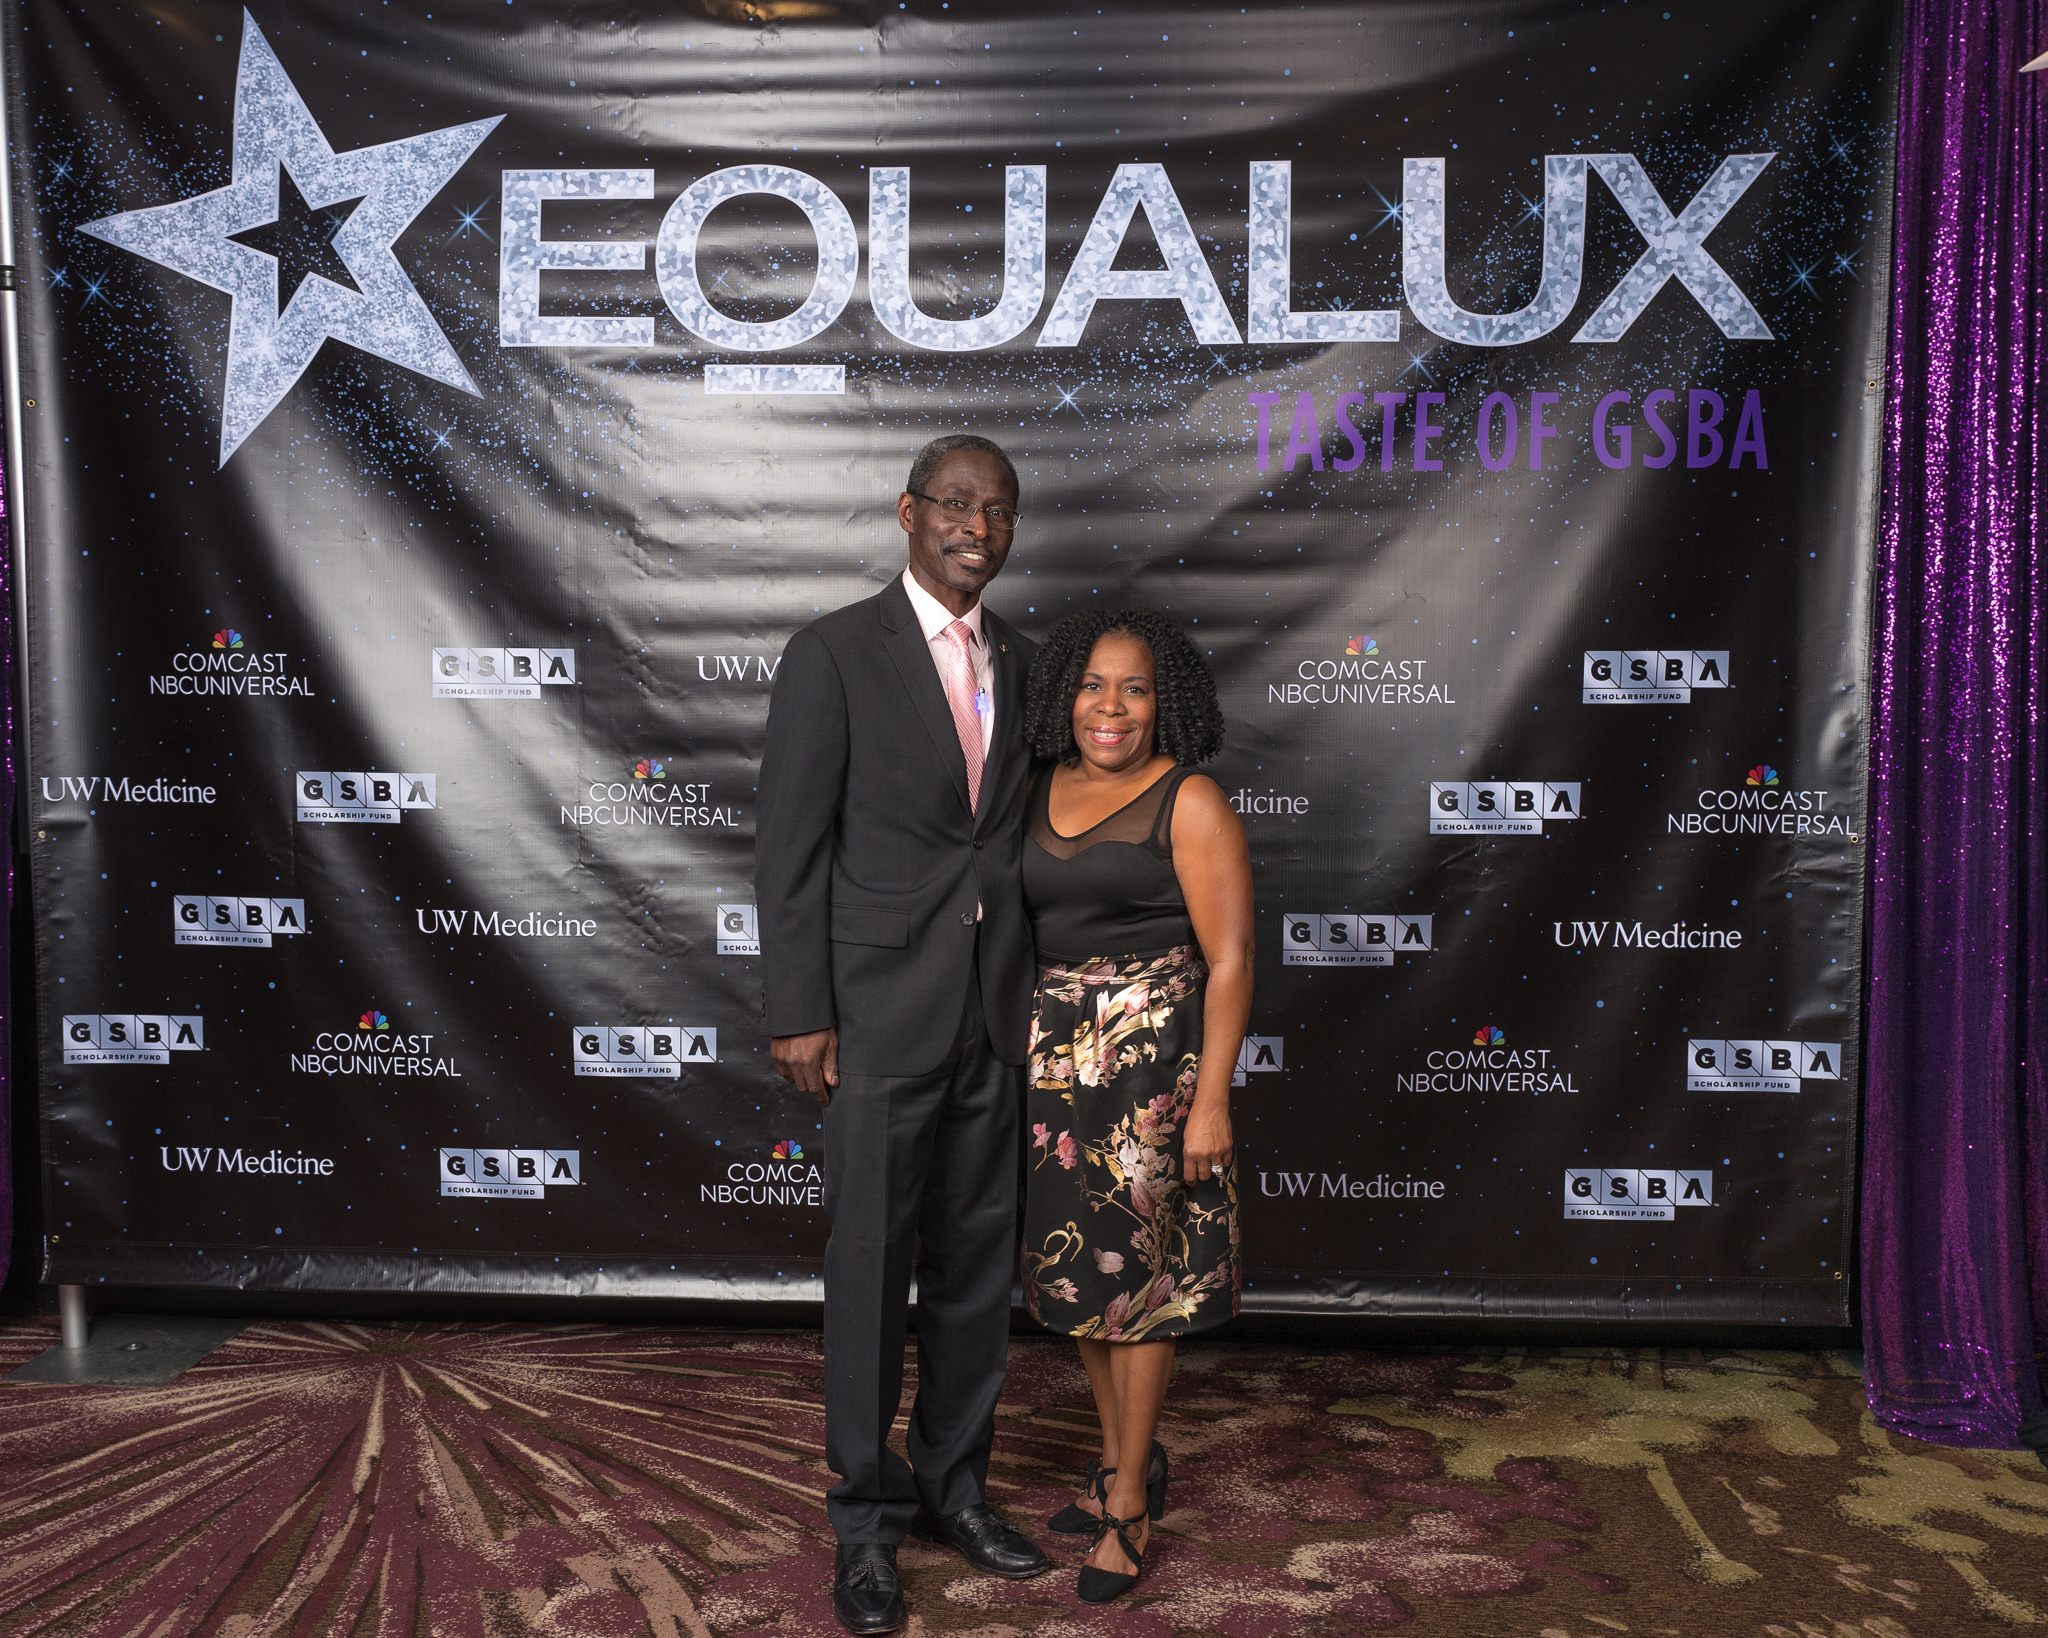 111718_GSBA EQUALUX at The Westin Seattle (Credit- Nate Gowdy)-140.jpg